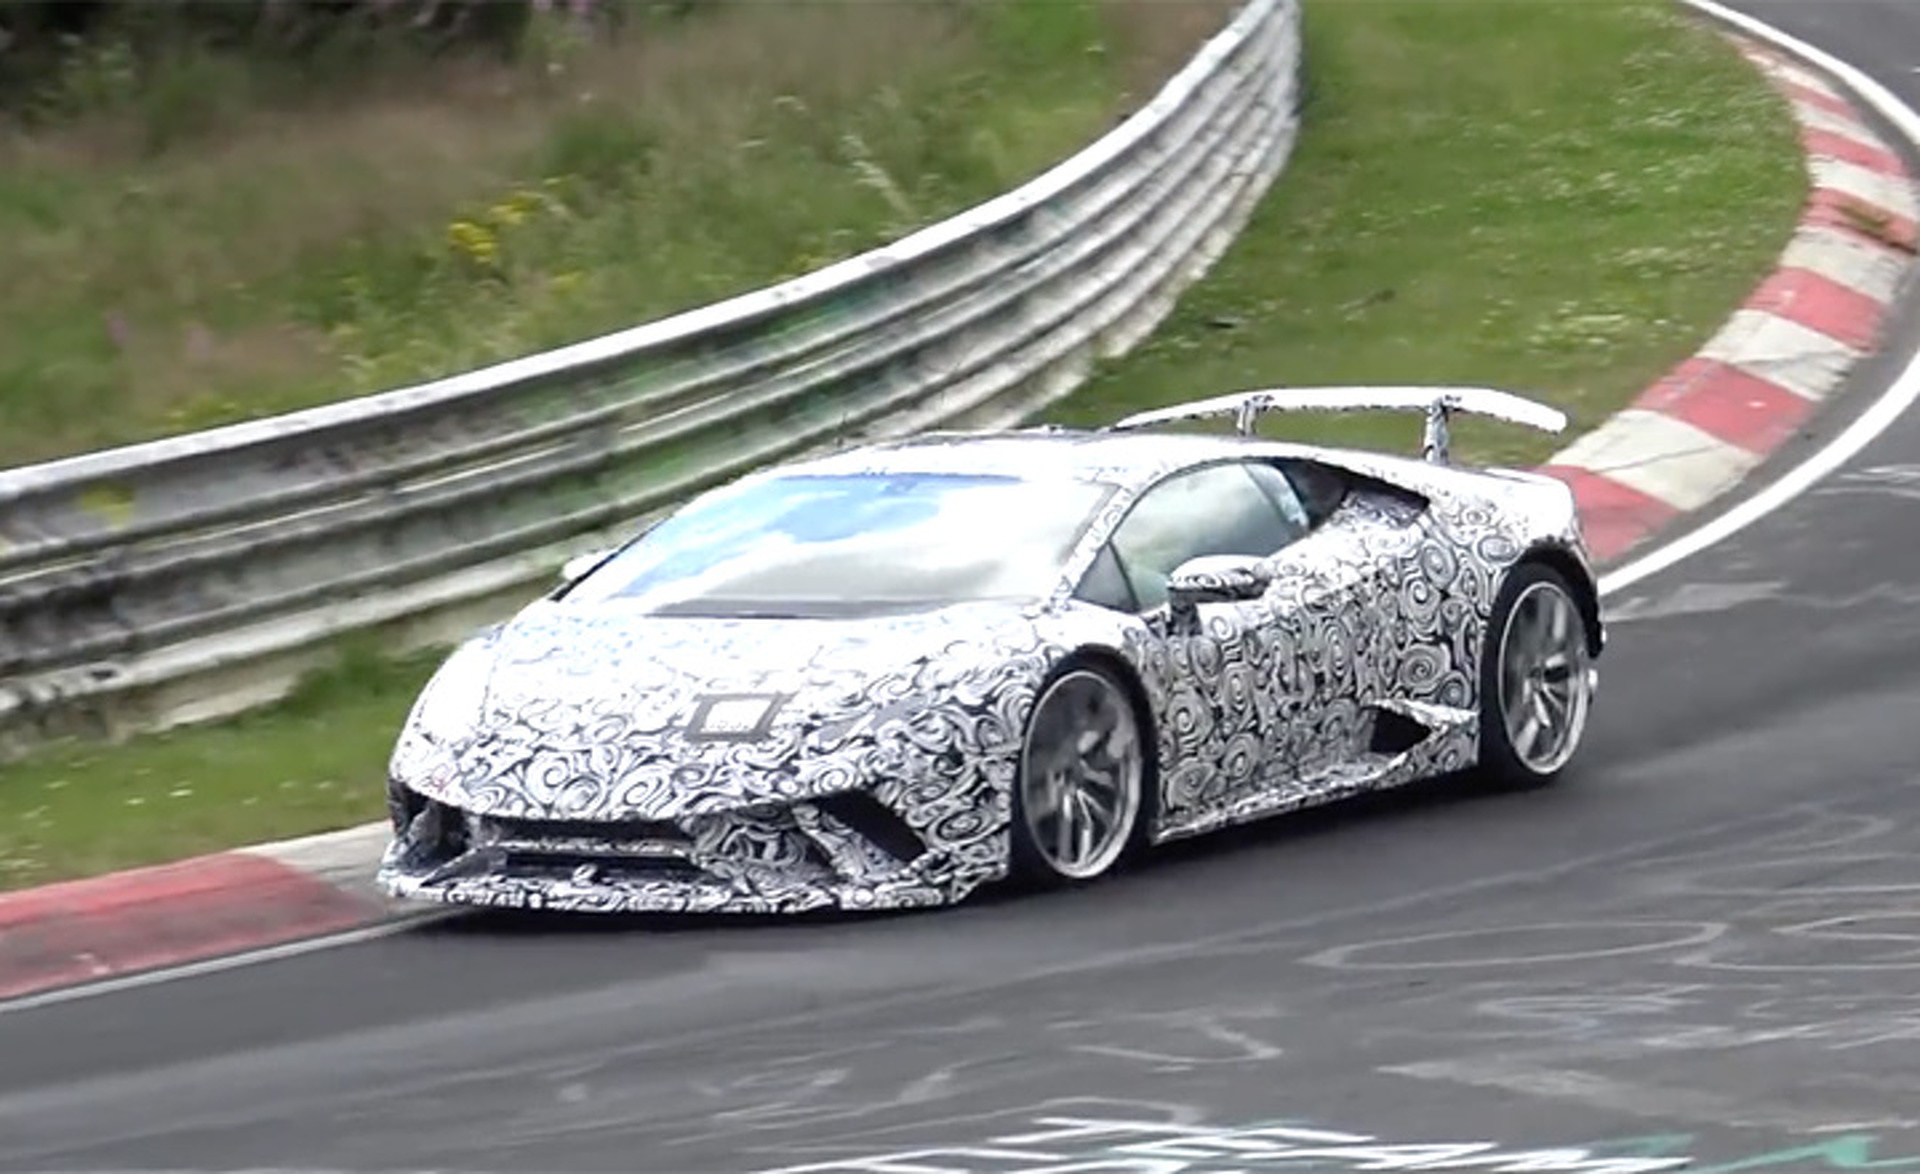 Could This Be the Latest Lamborghini Huracan Supercar?